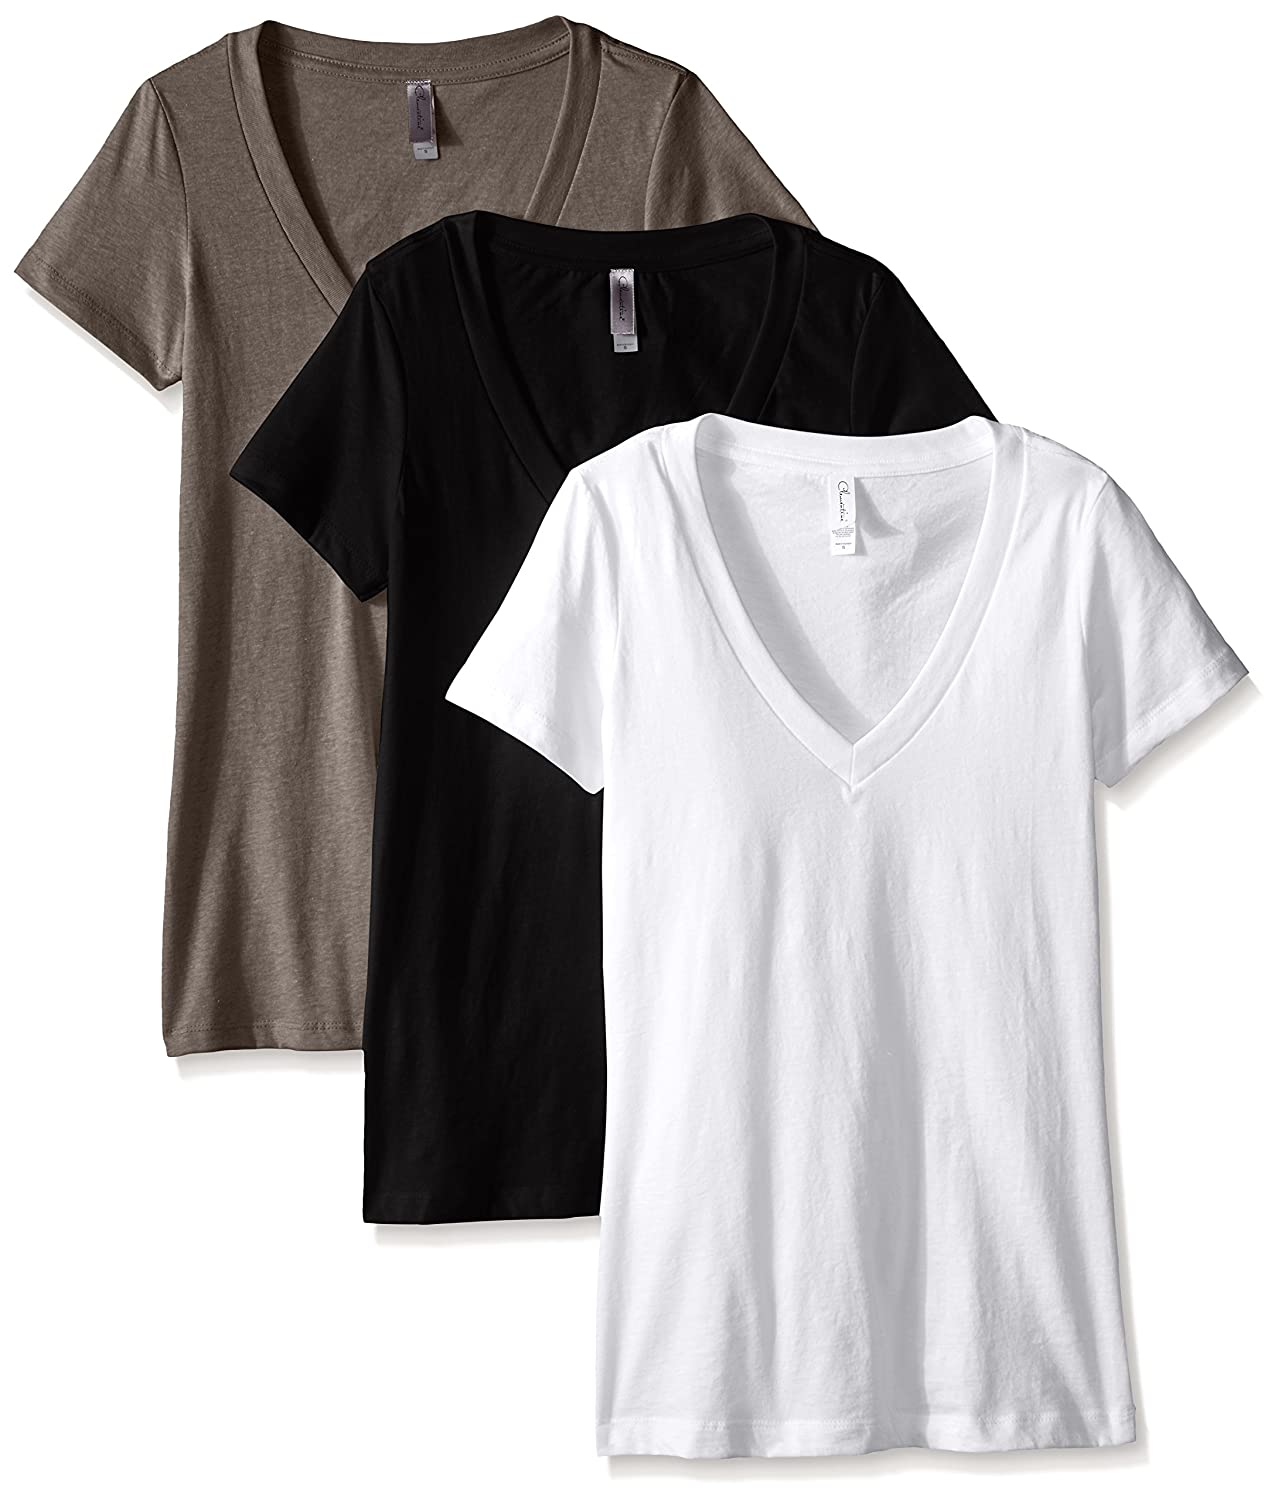 Clementine Women's Deep V-Neck Tee (Pack of 3) Clementine Womens Child Code 3-CLM6640